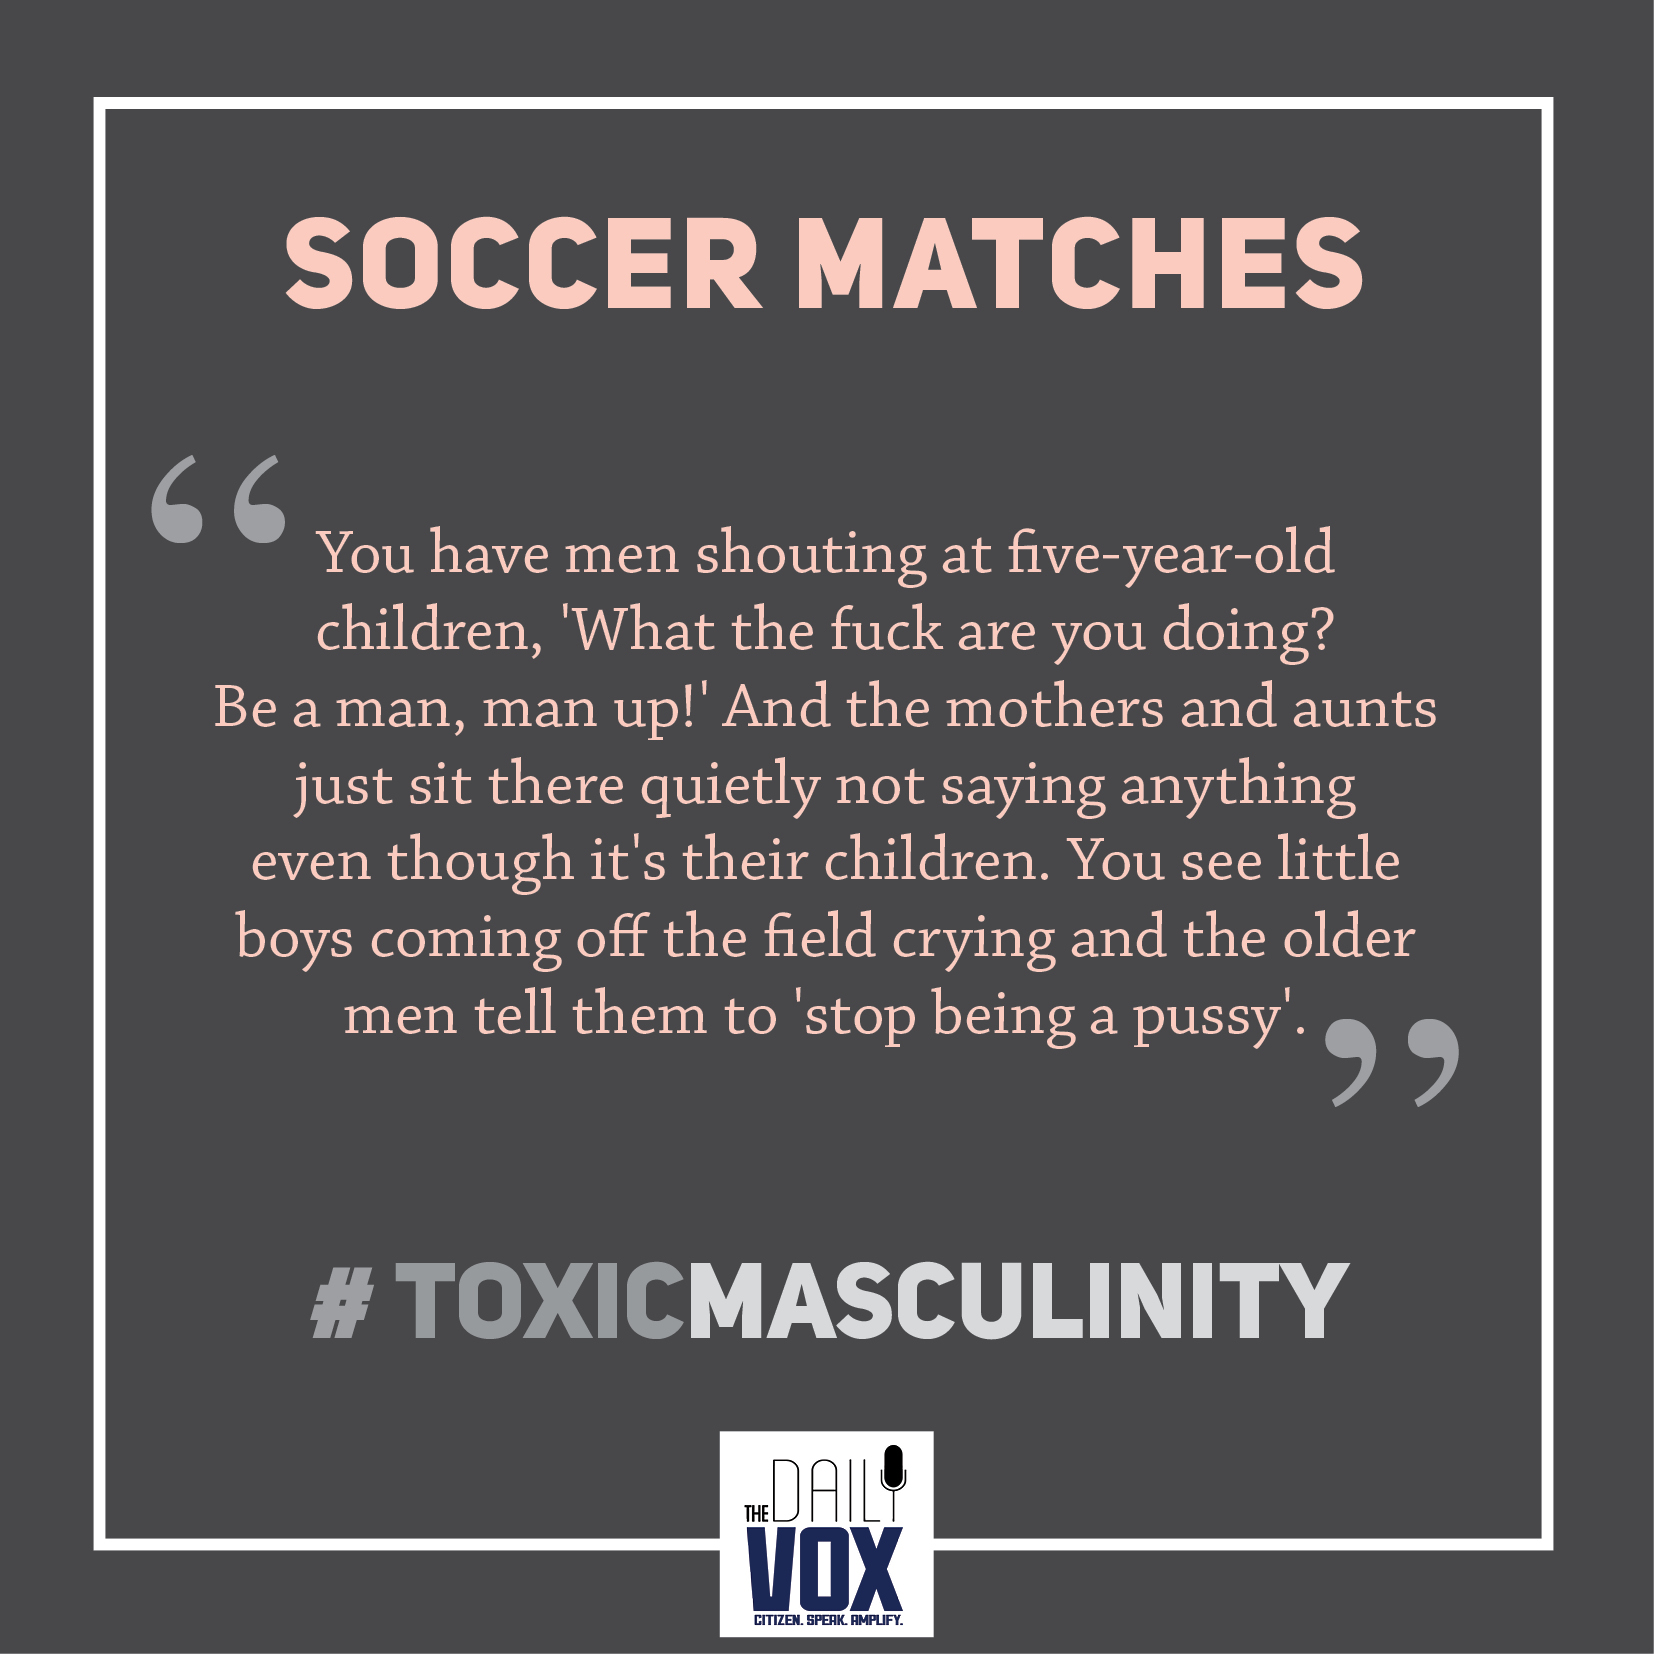 toxic masculinity soccer matches sexism